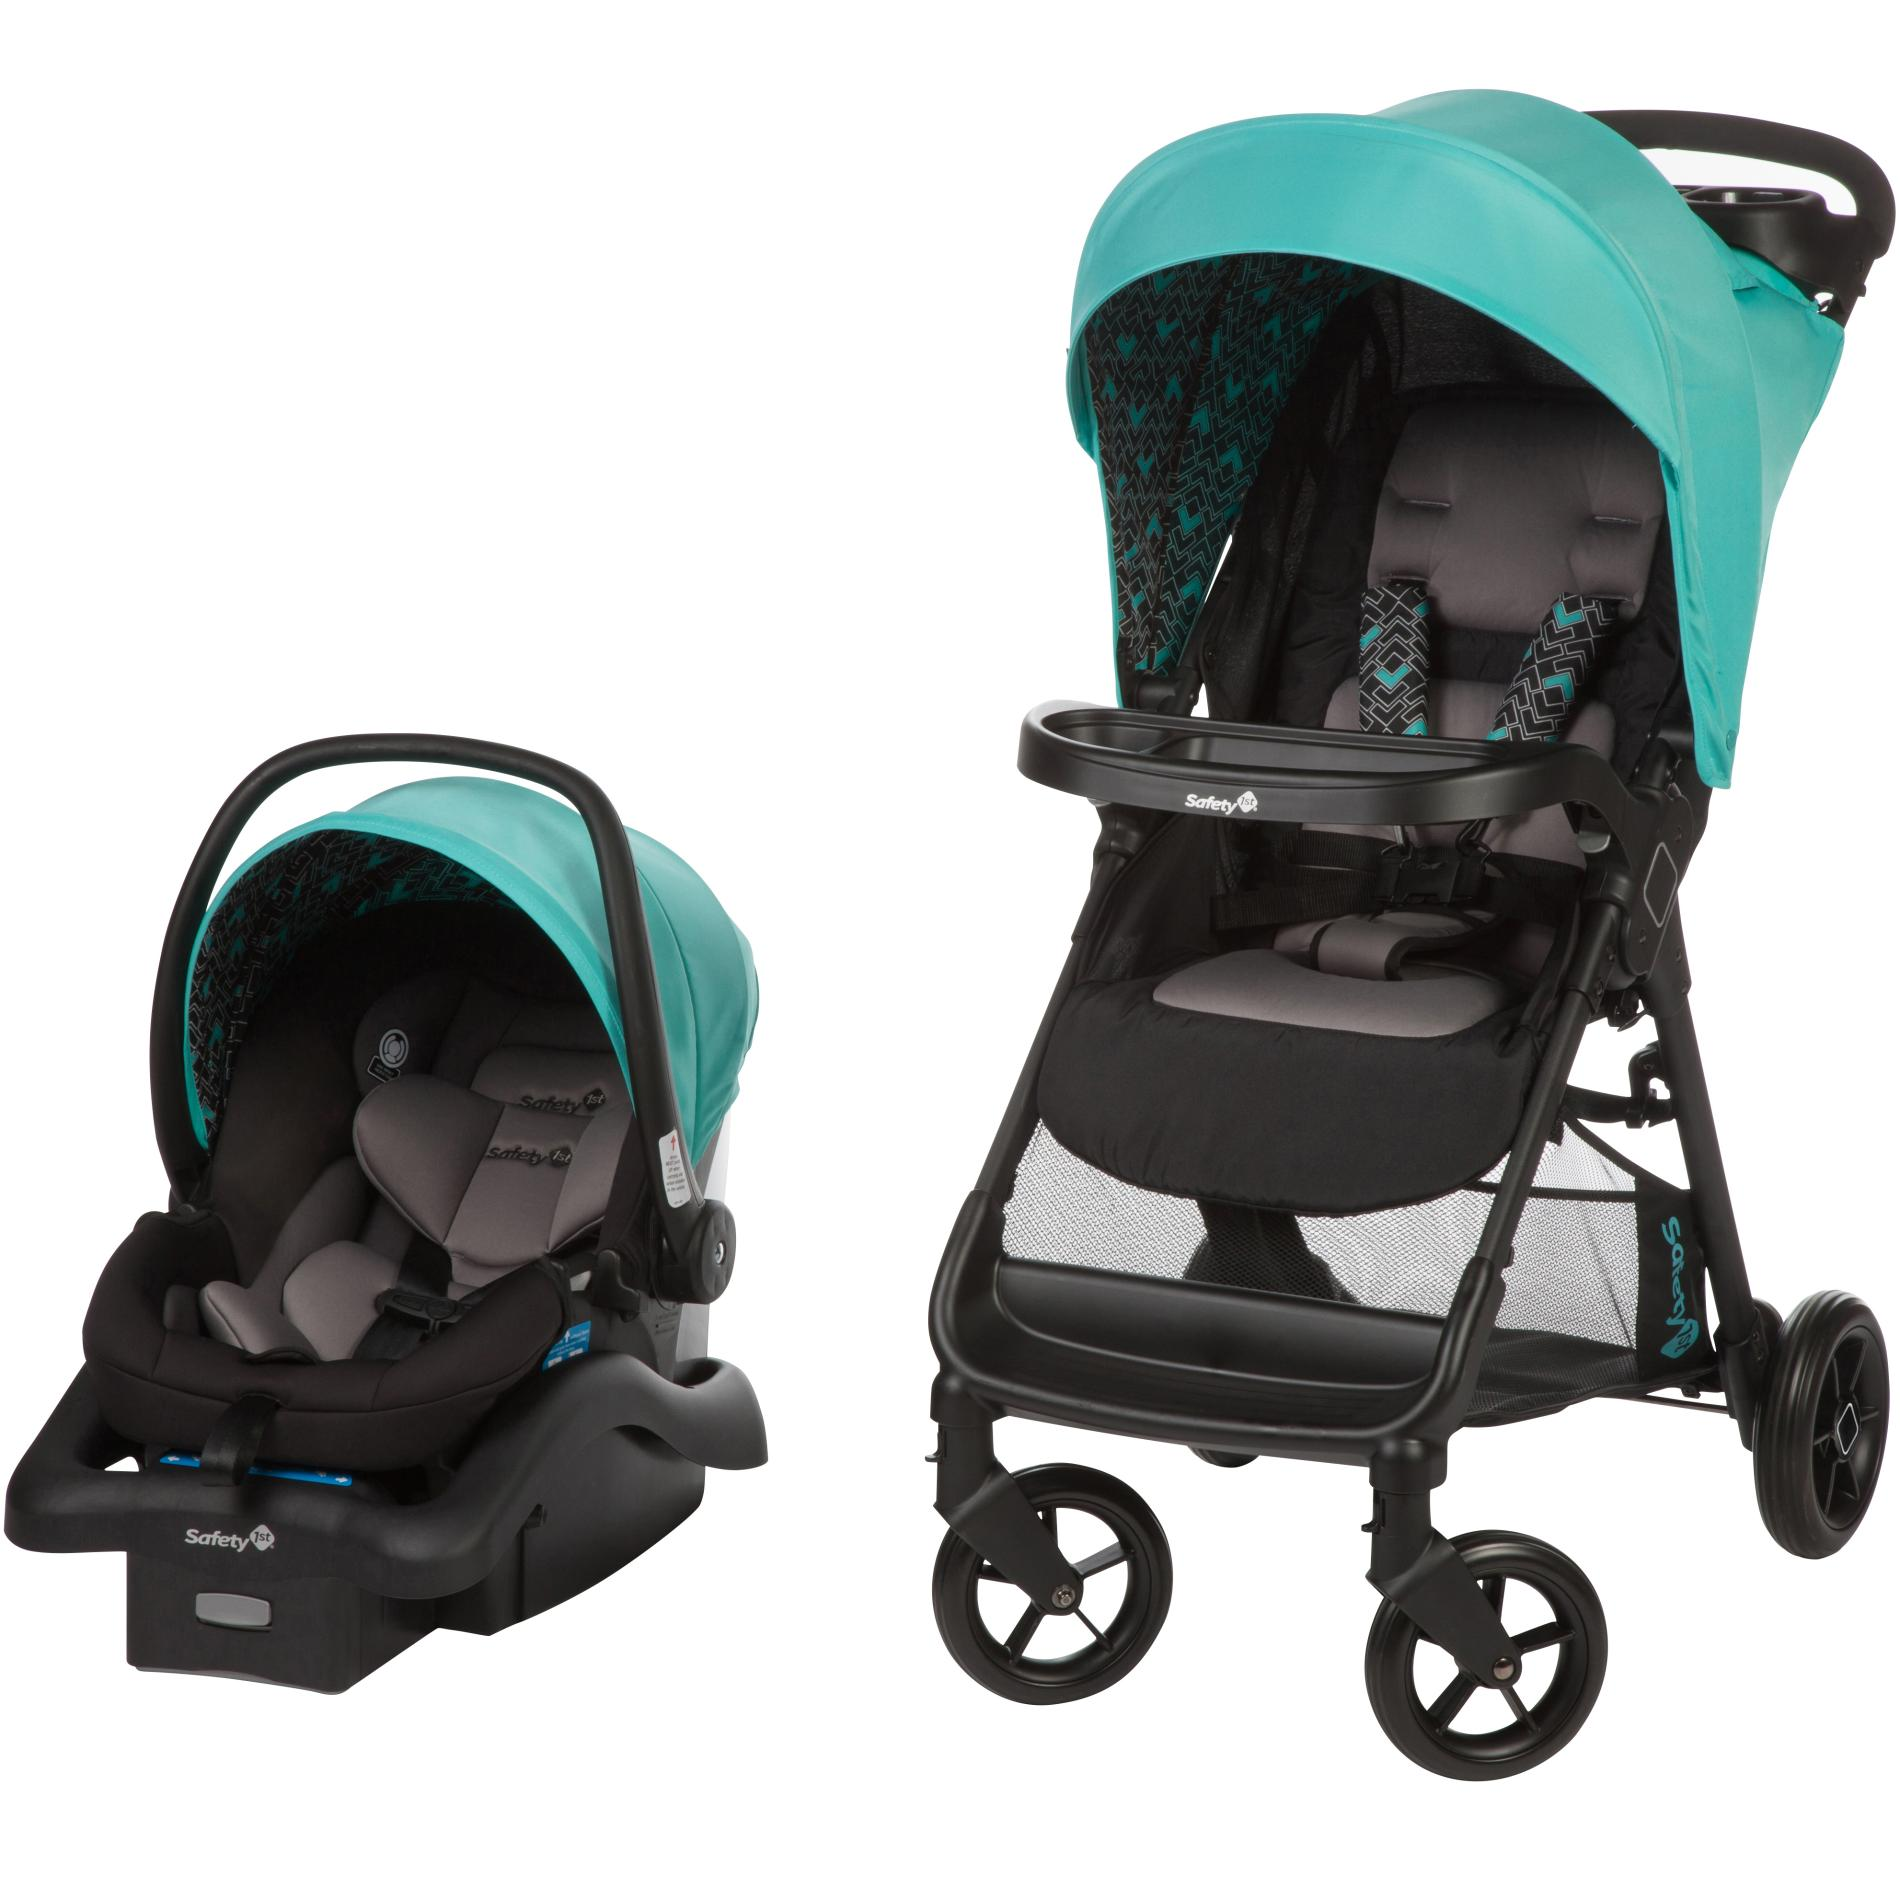 Baby Stroller System Reviews Safety 1st Stroller Car Seat Travel System